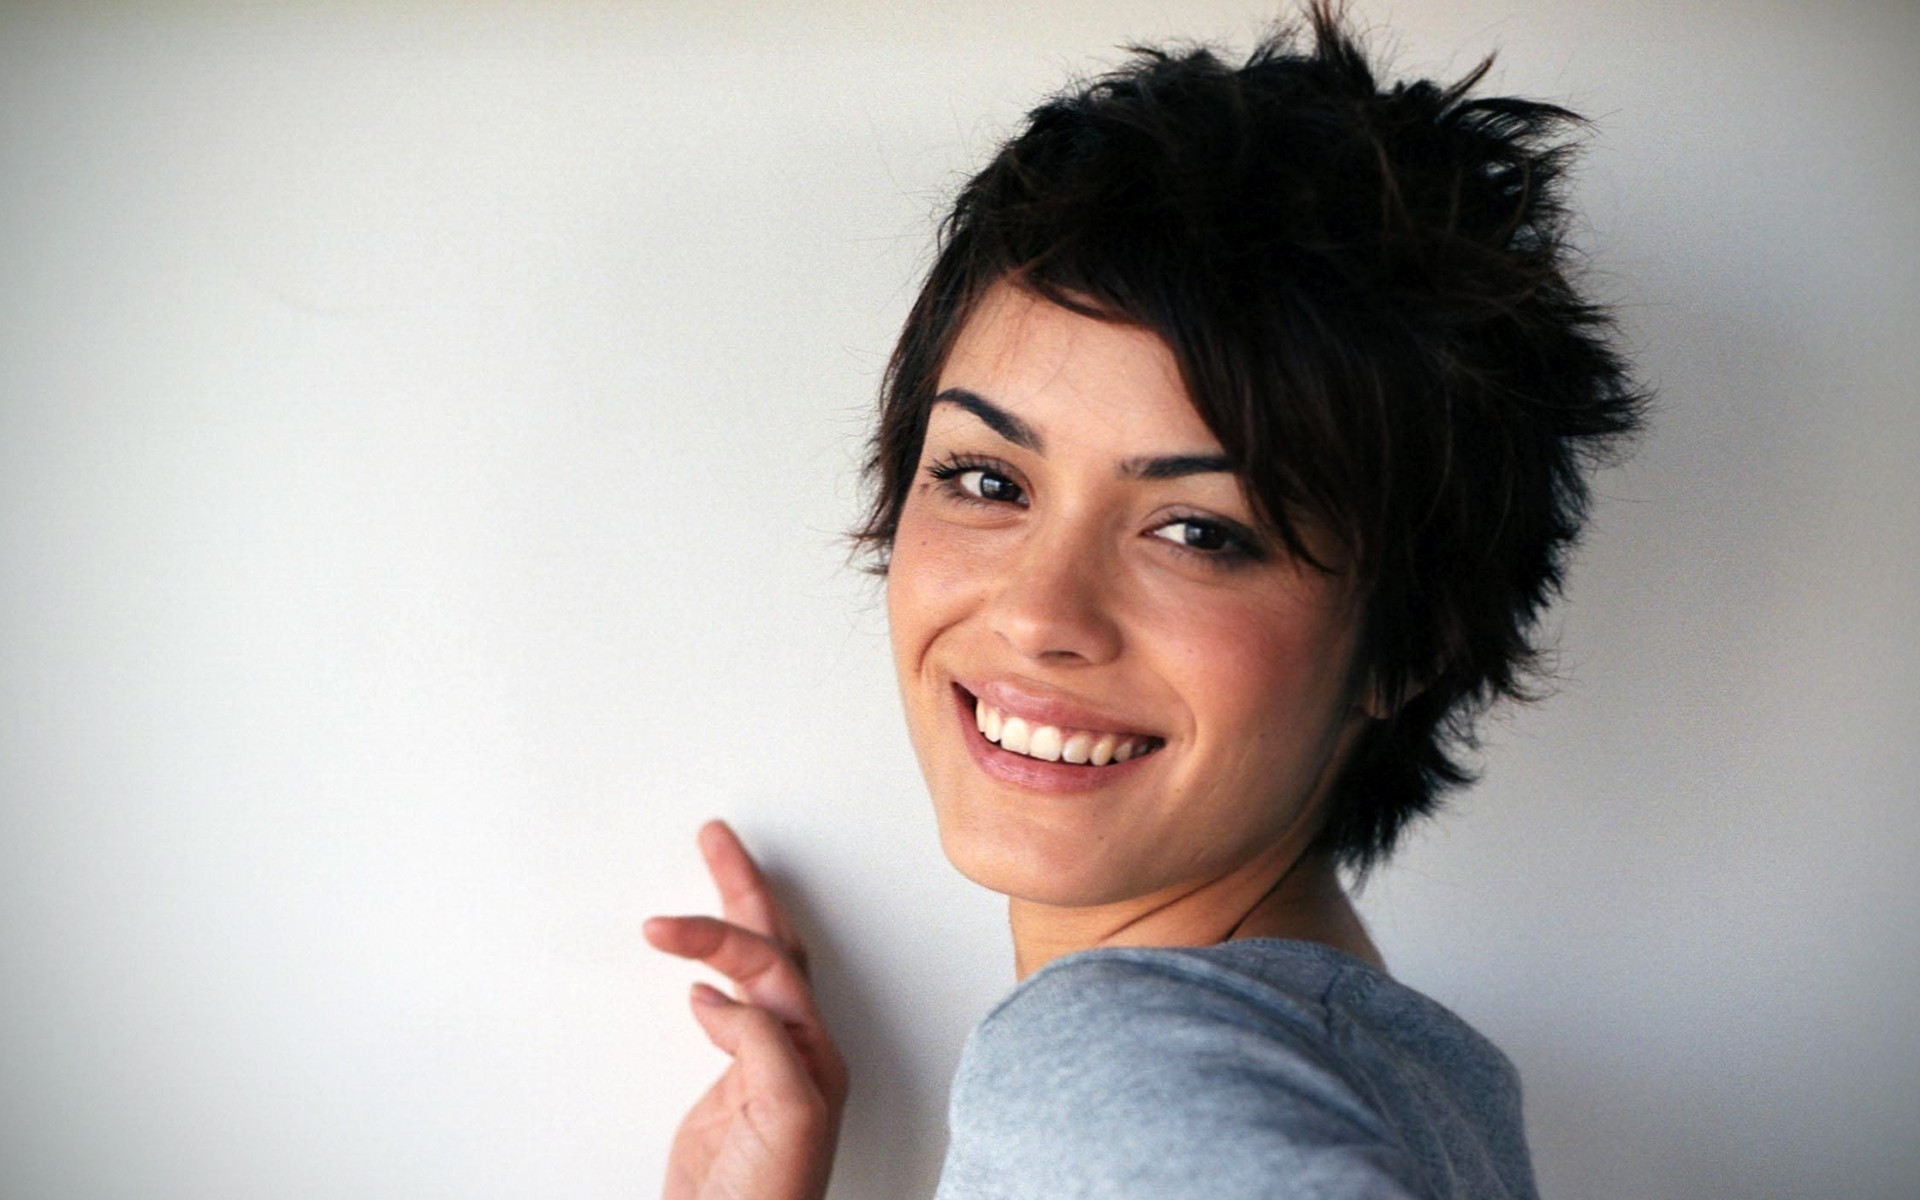 Sinister 2 Set to Begin Production in Chicago As Shannyn Sossamon Cast Sinister 2 Set to Begin Production in Chicago As Shannyn Sossamon Cast